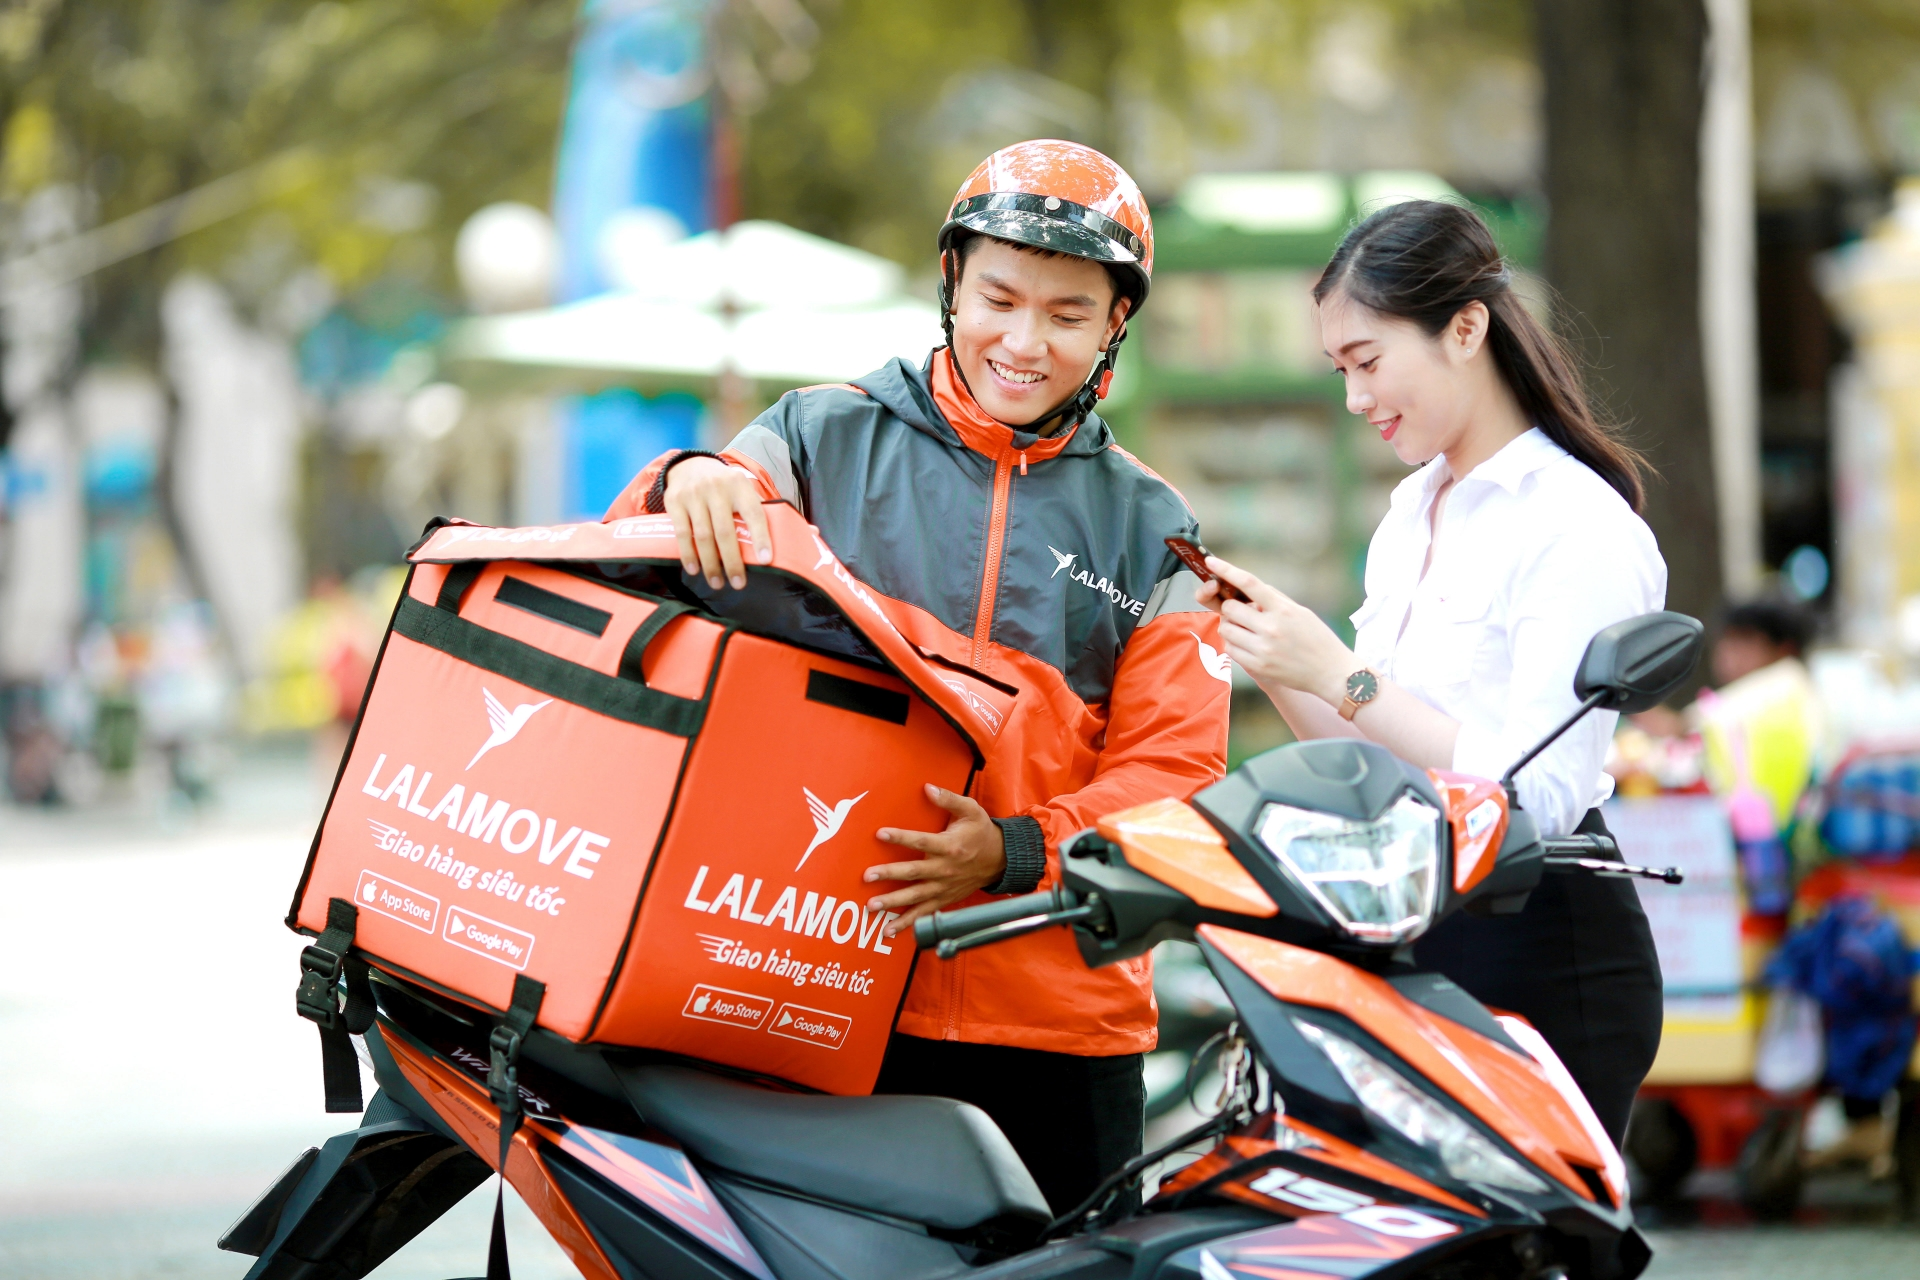 Lalamove adjusts fares to share difficulties with customers